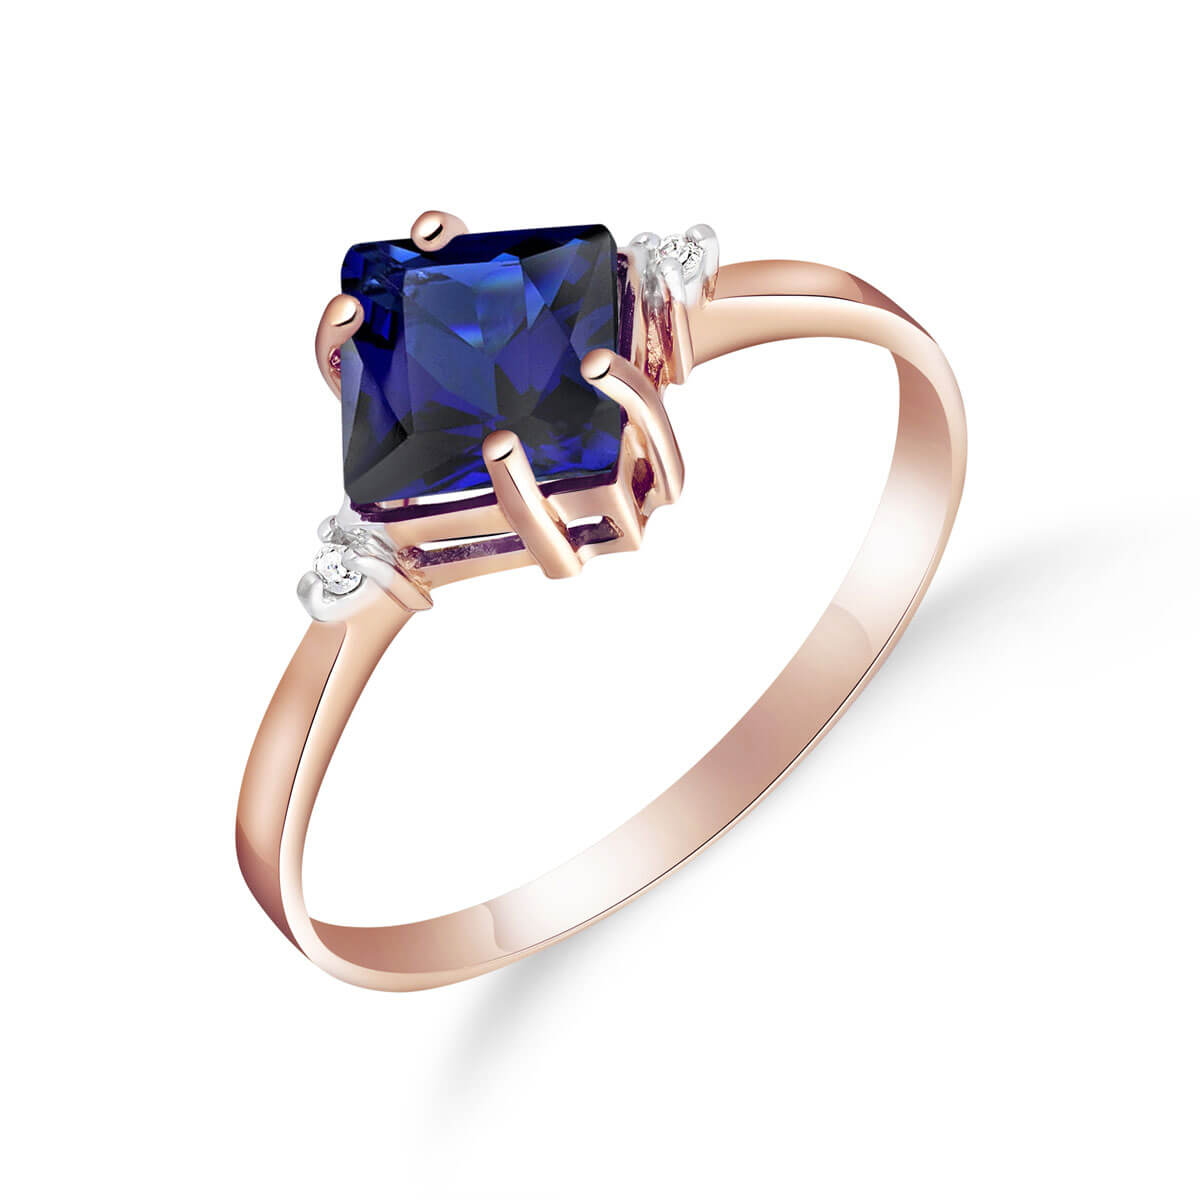 Sapphire & Diamond Princess Ring in 9ct Rose Gold